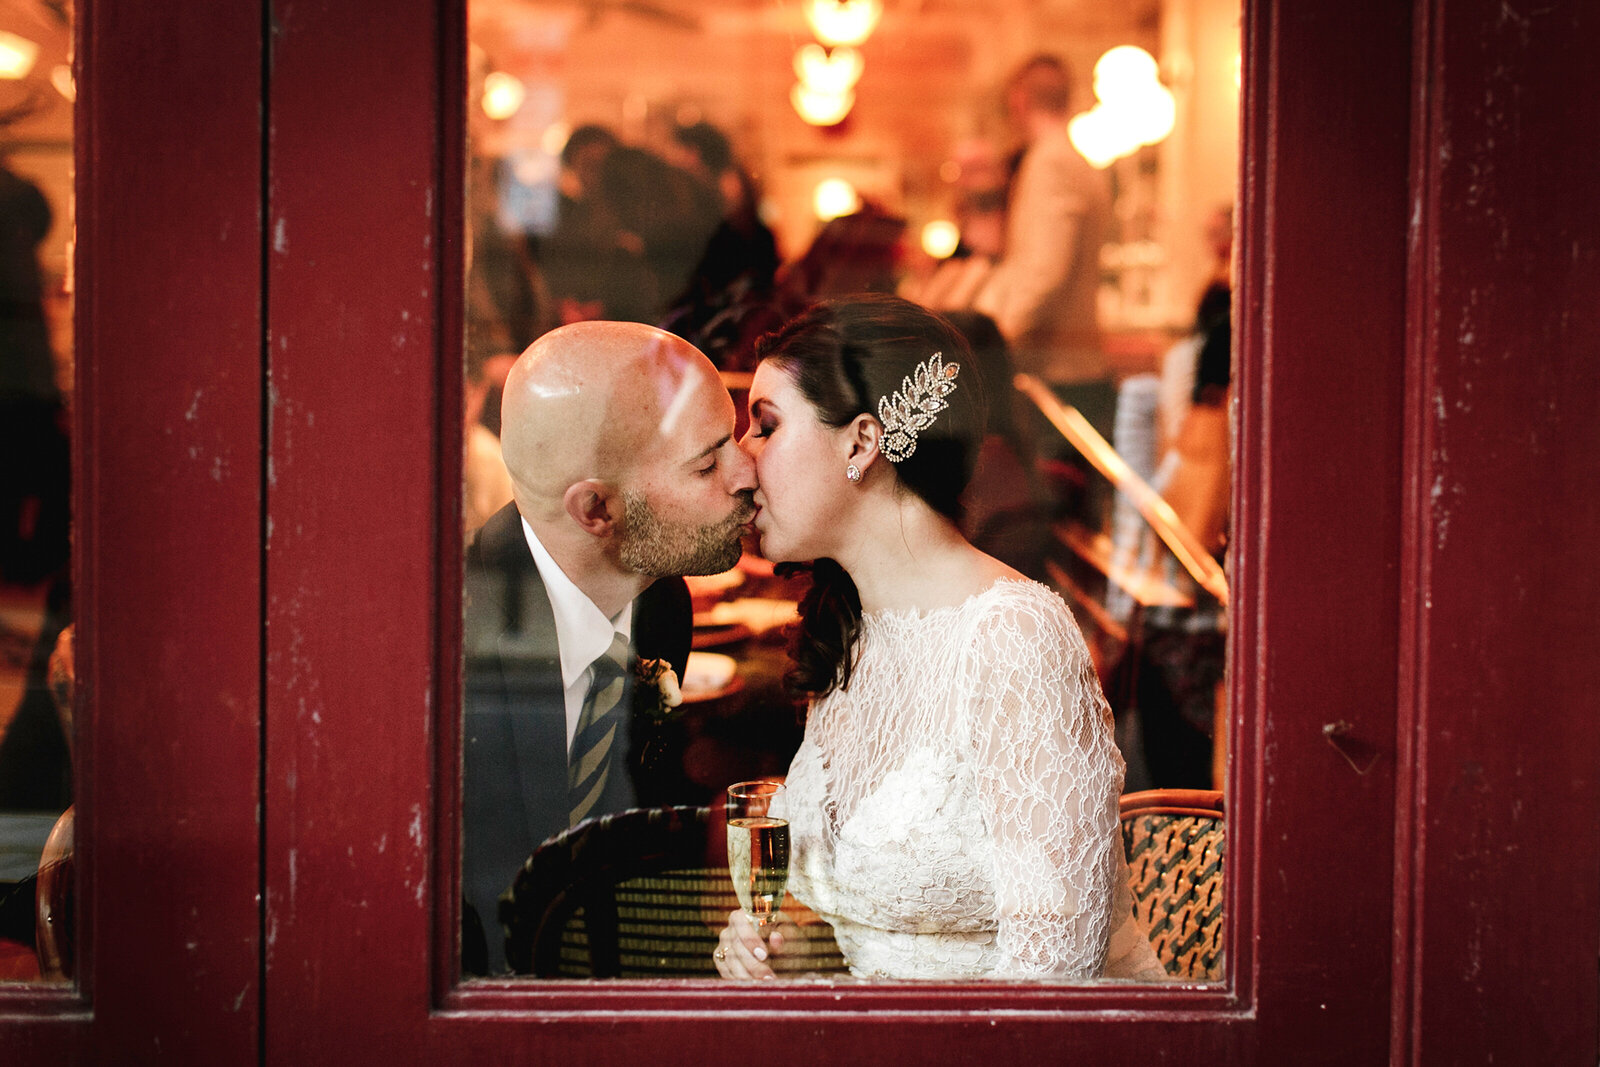 romantic couple kissing in restaurant window